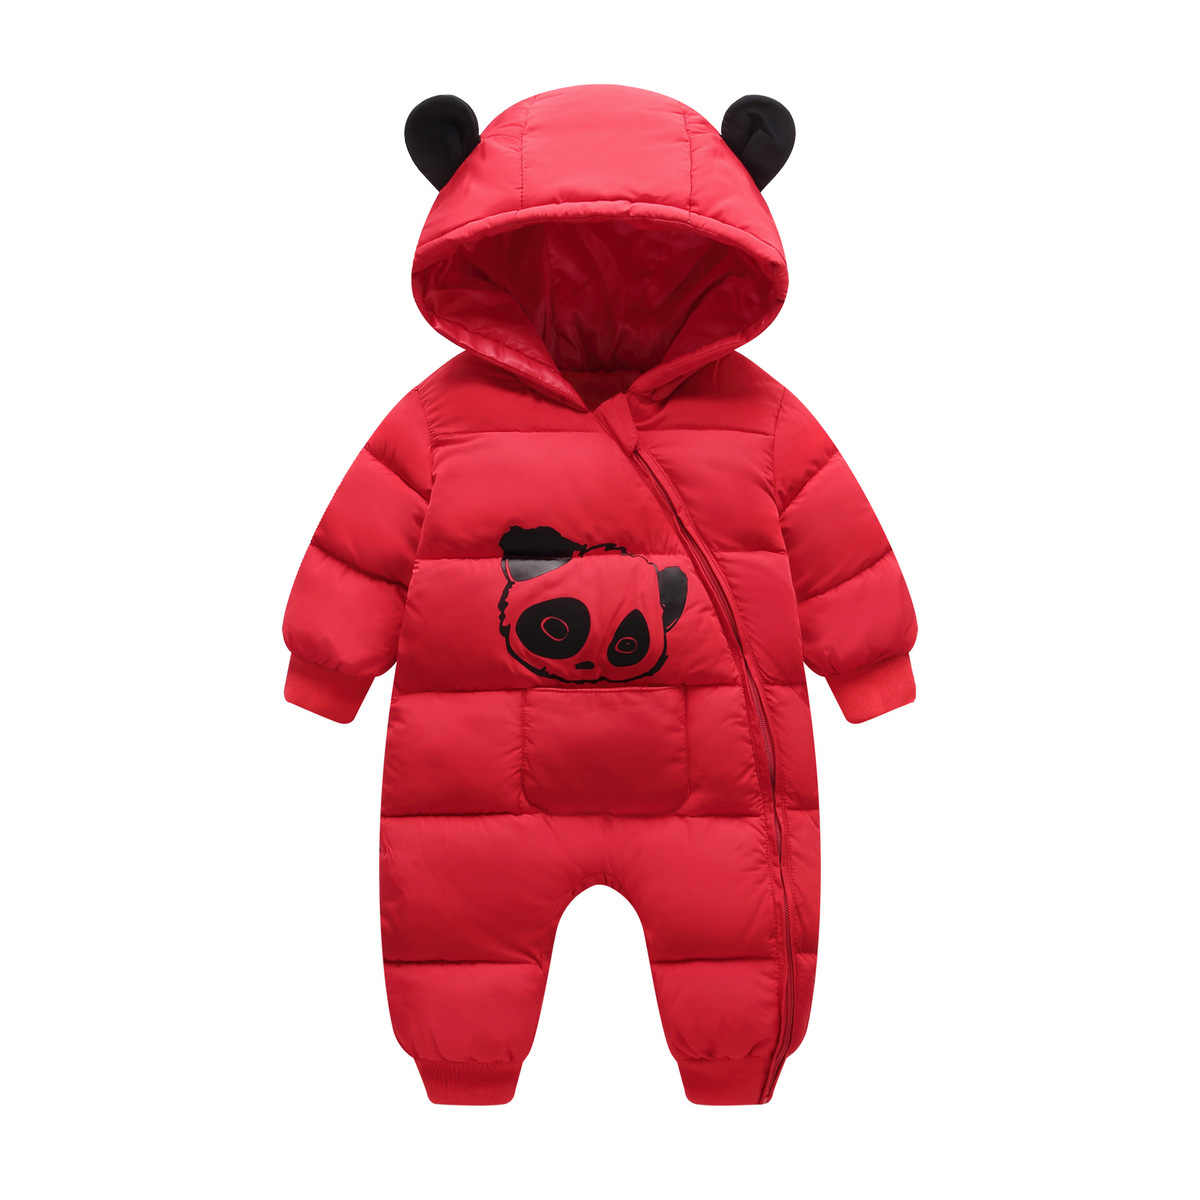 89f0e865c ... Baby boy girl Clothes 2018 New born Winter Hooded Rompers Thick Cotton  Outfit Newborn Jumpsuit Children ...